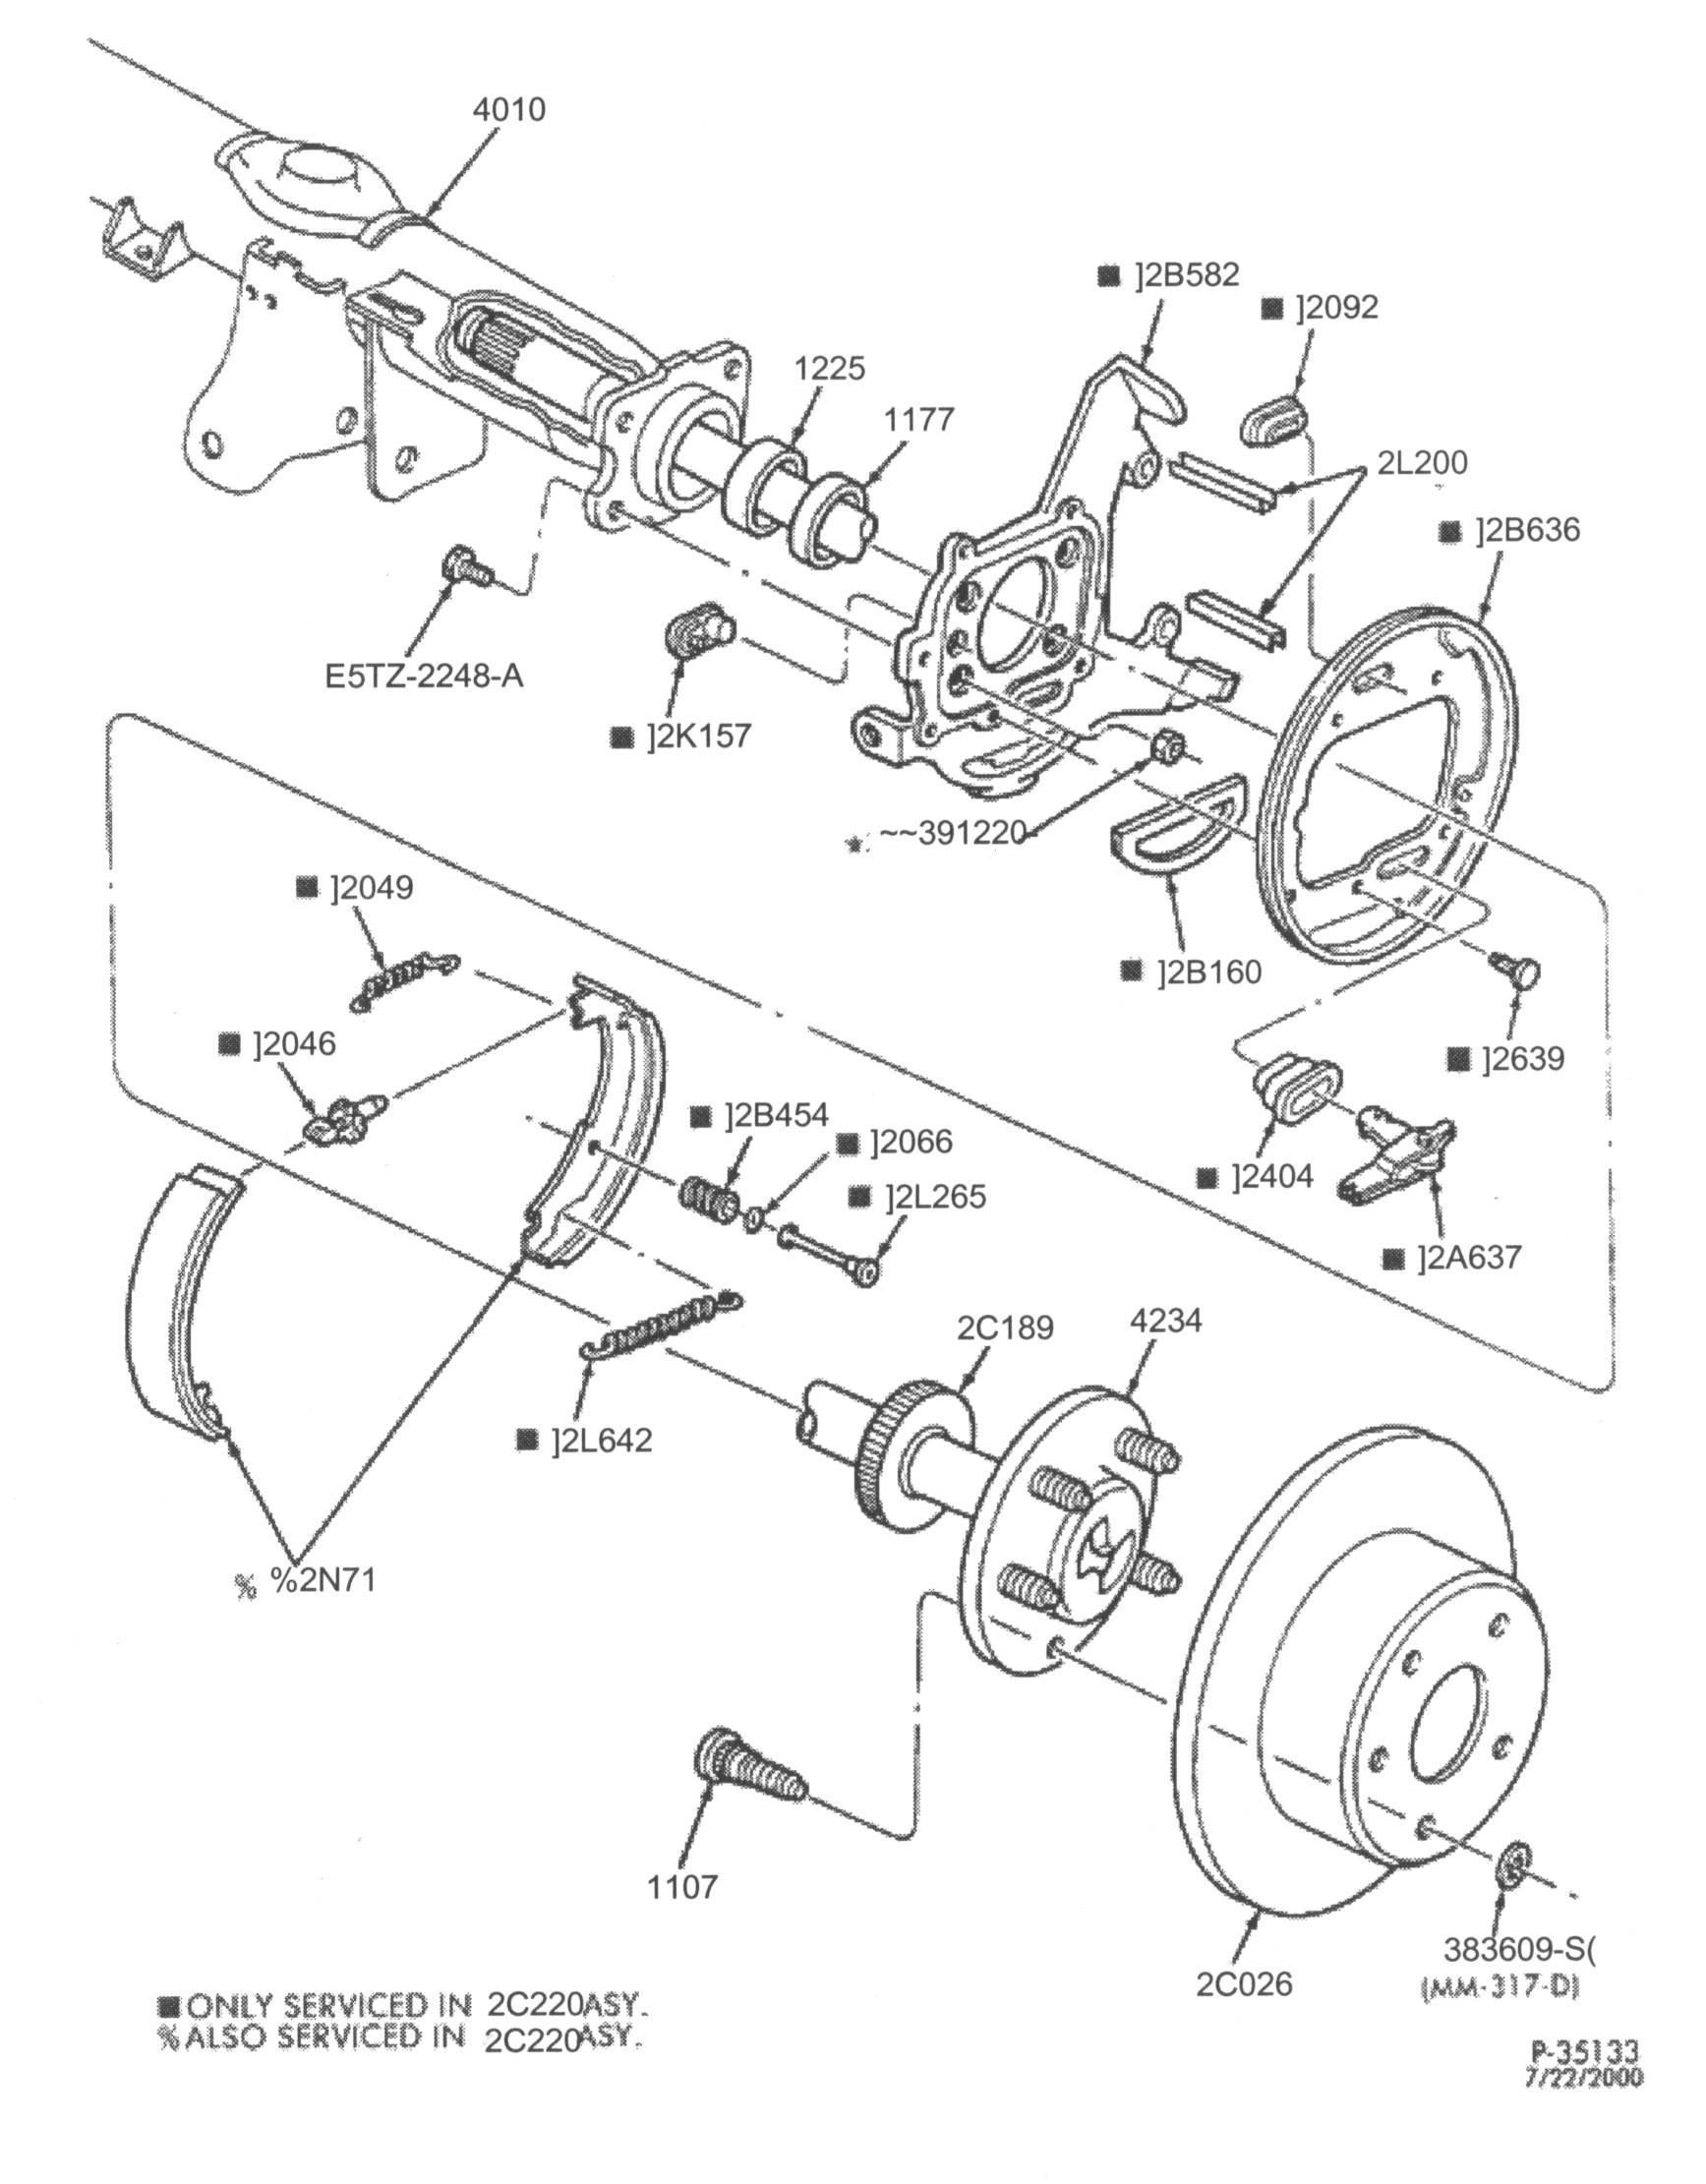 Ford Crown Victoria Brake Service Notes